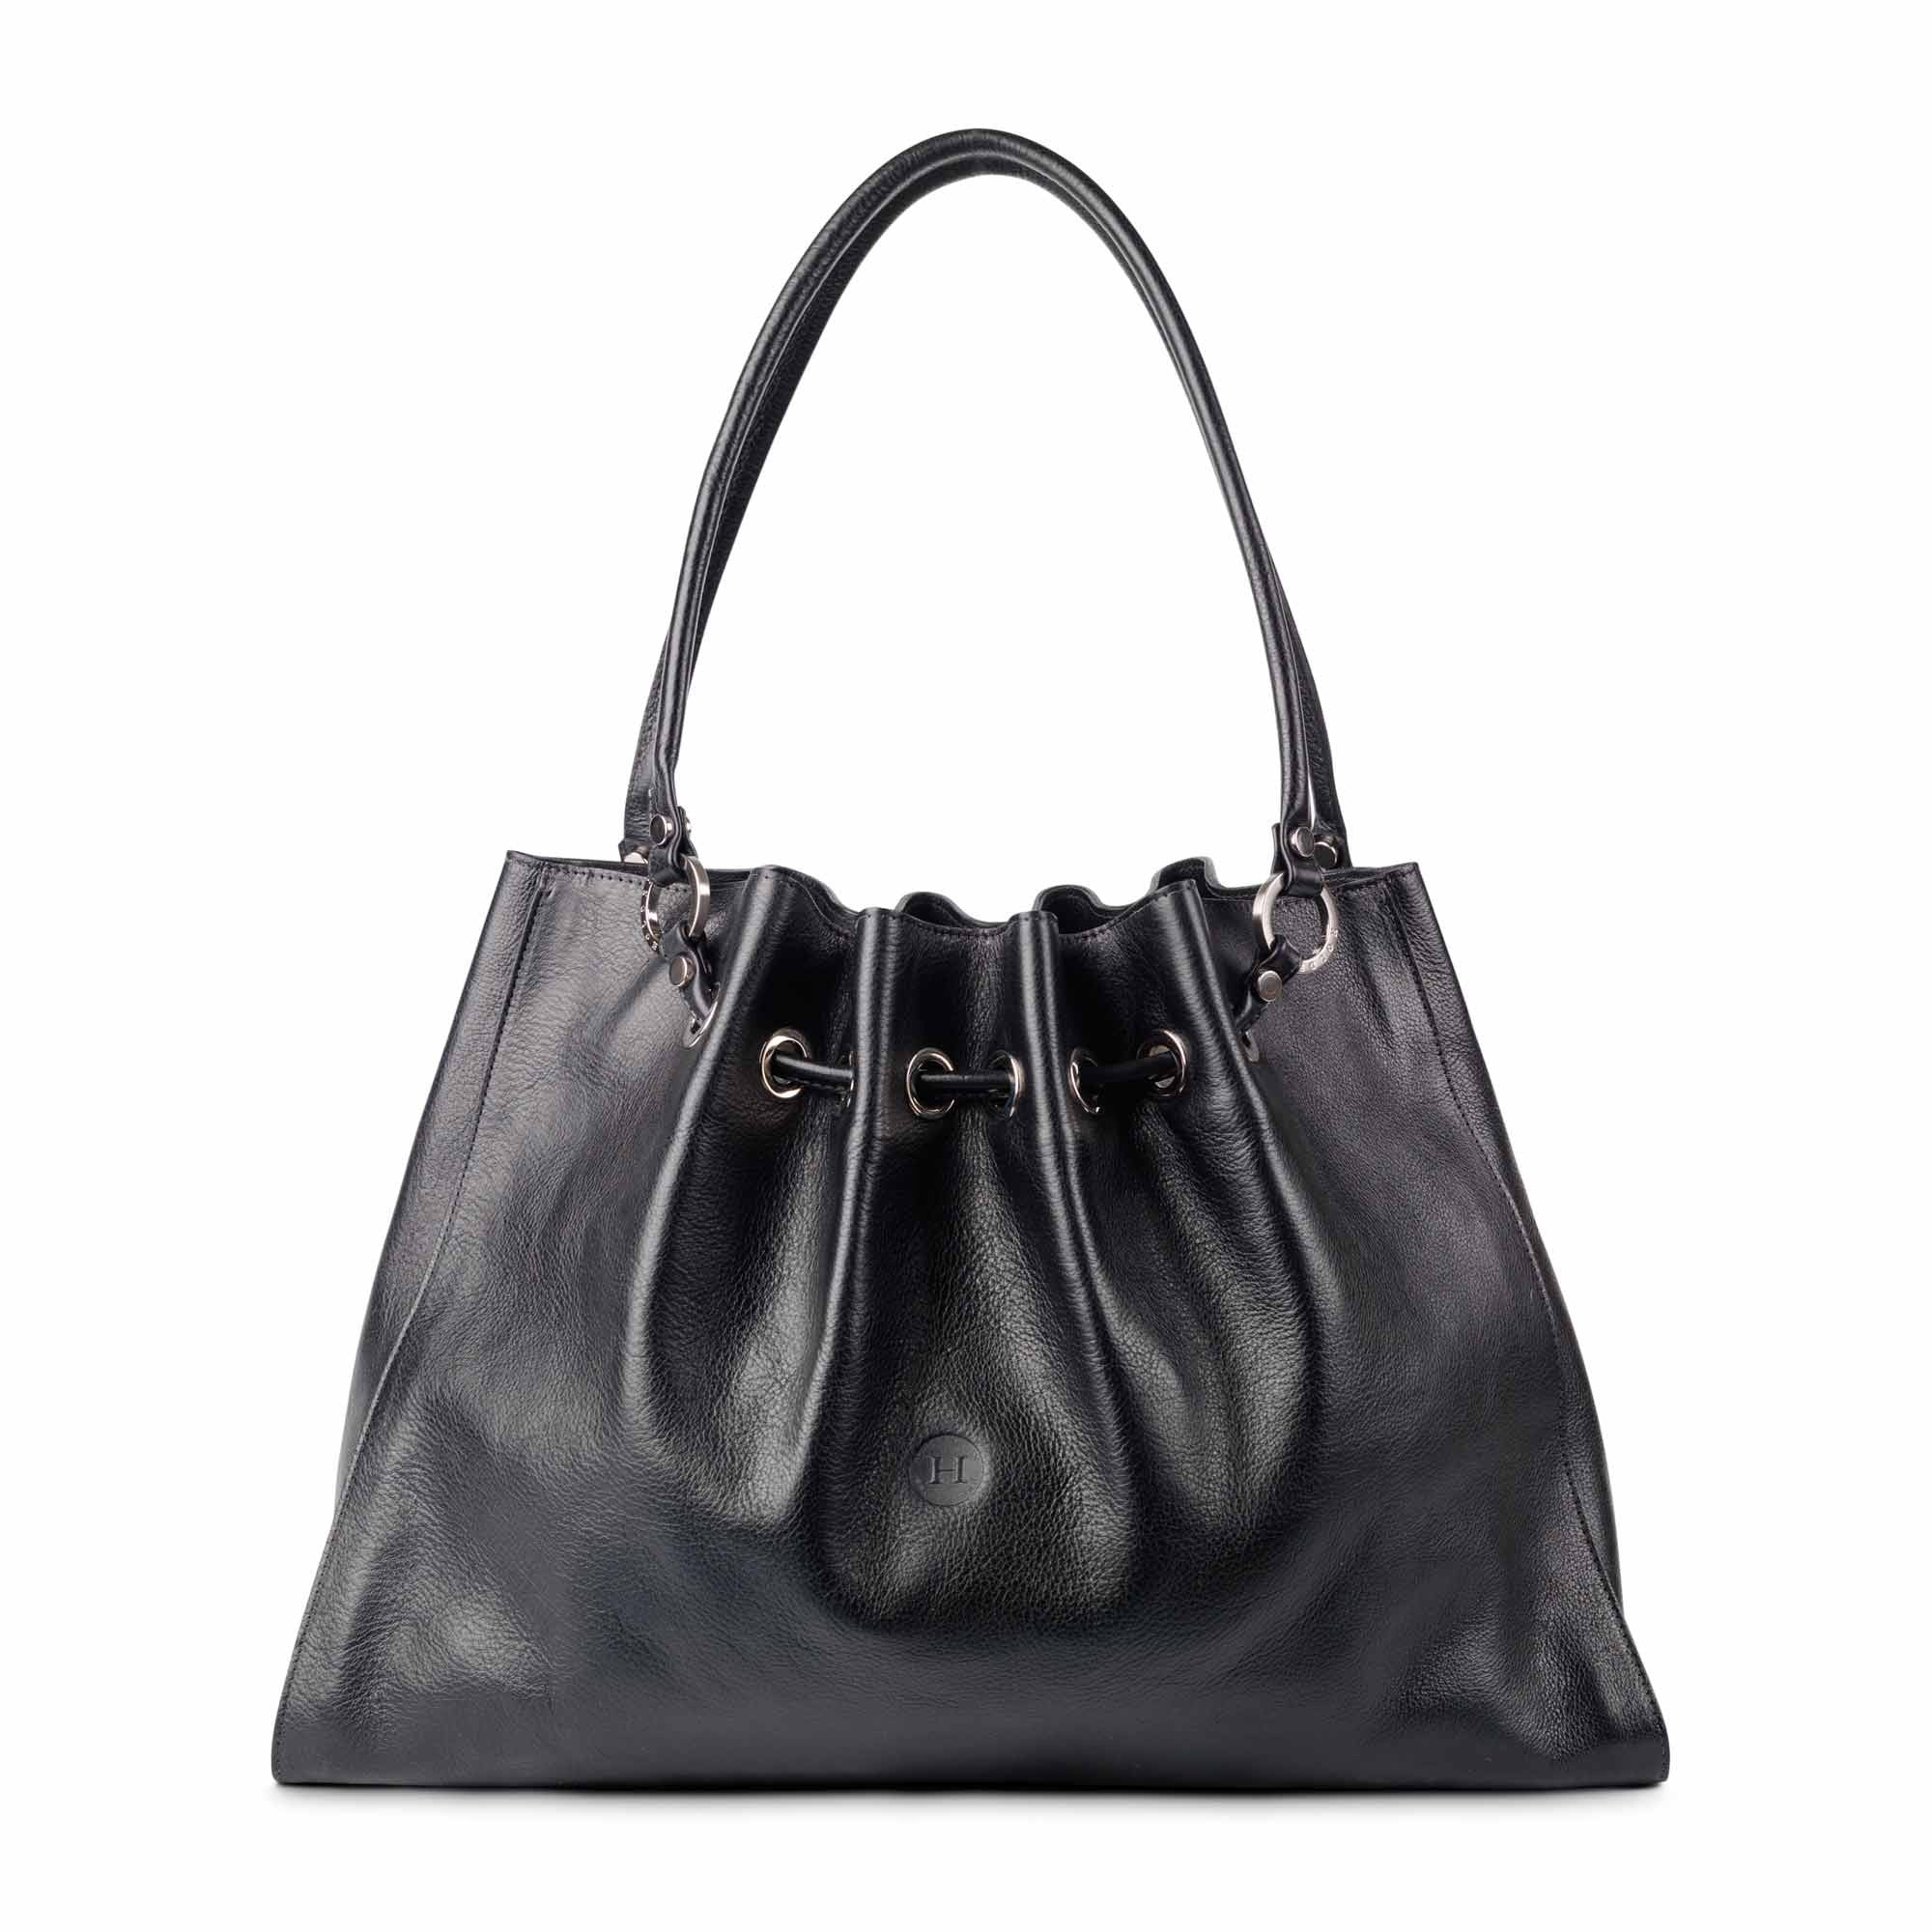 Siobhan Large Leather Tote Black - Holden Leathergoods, leather bags handmade in Ireland